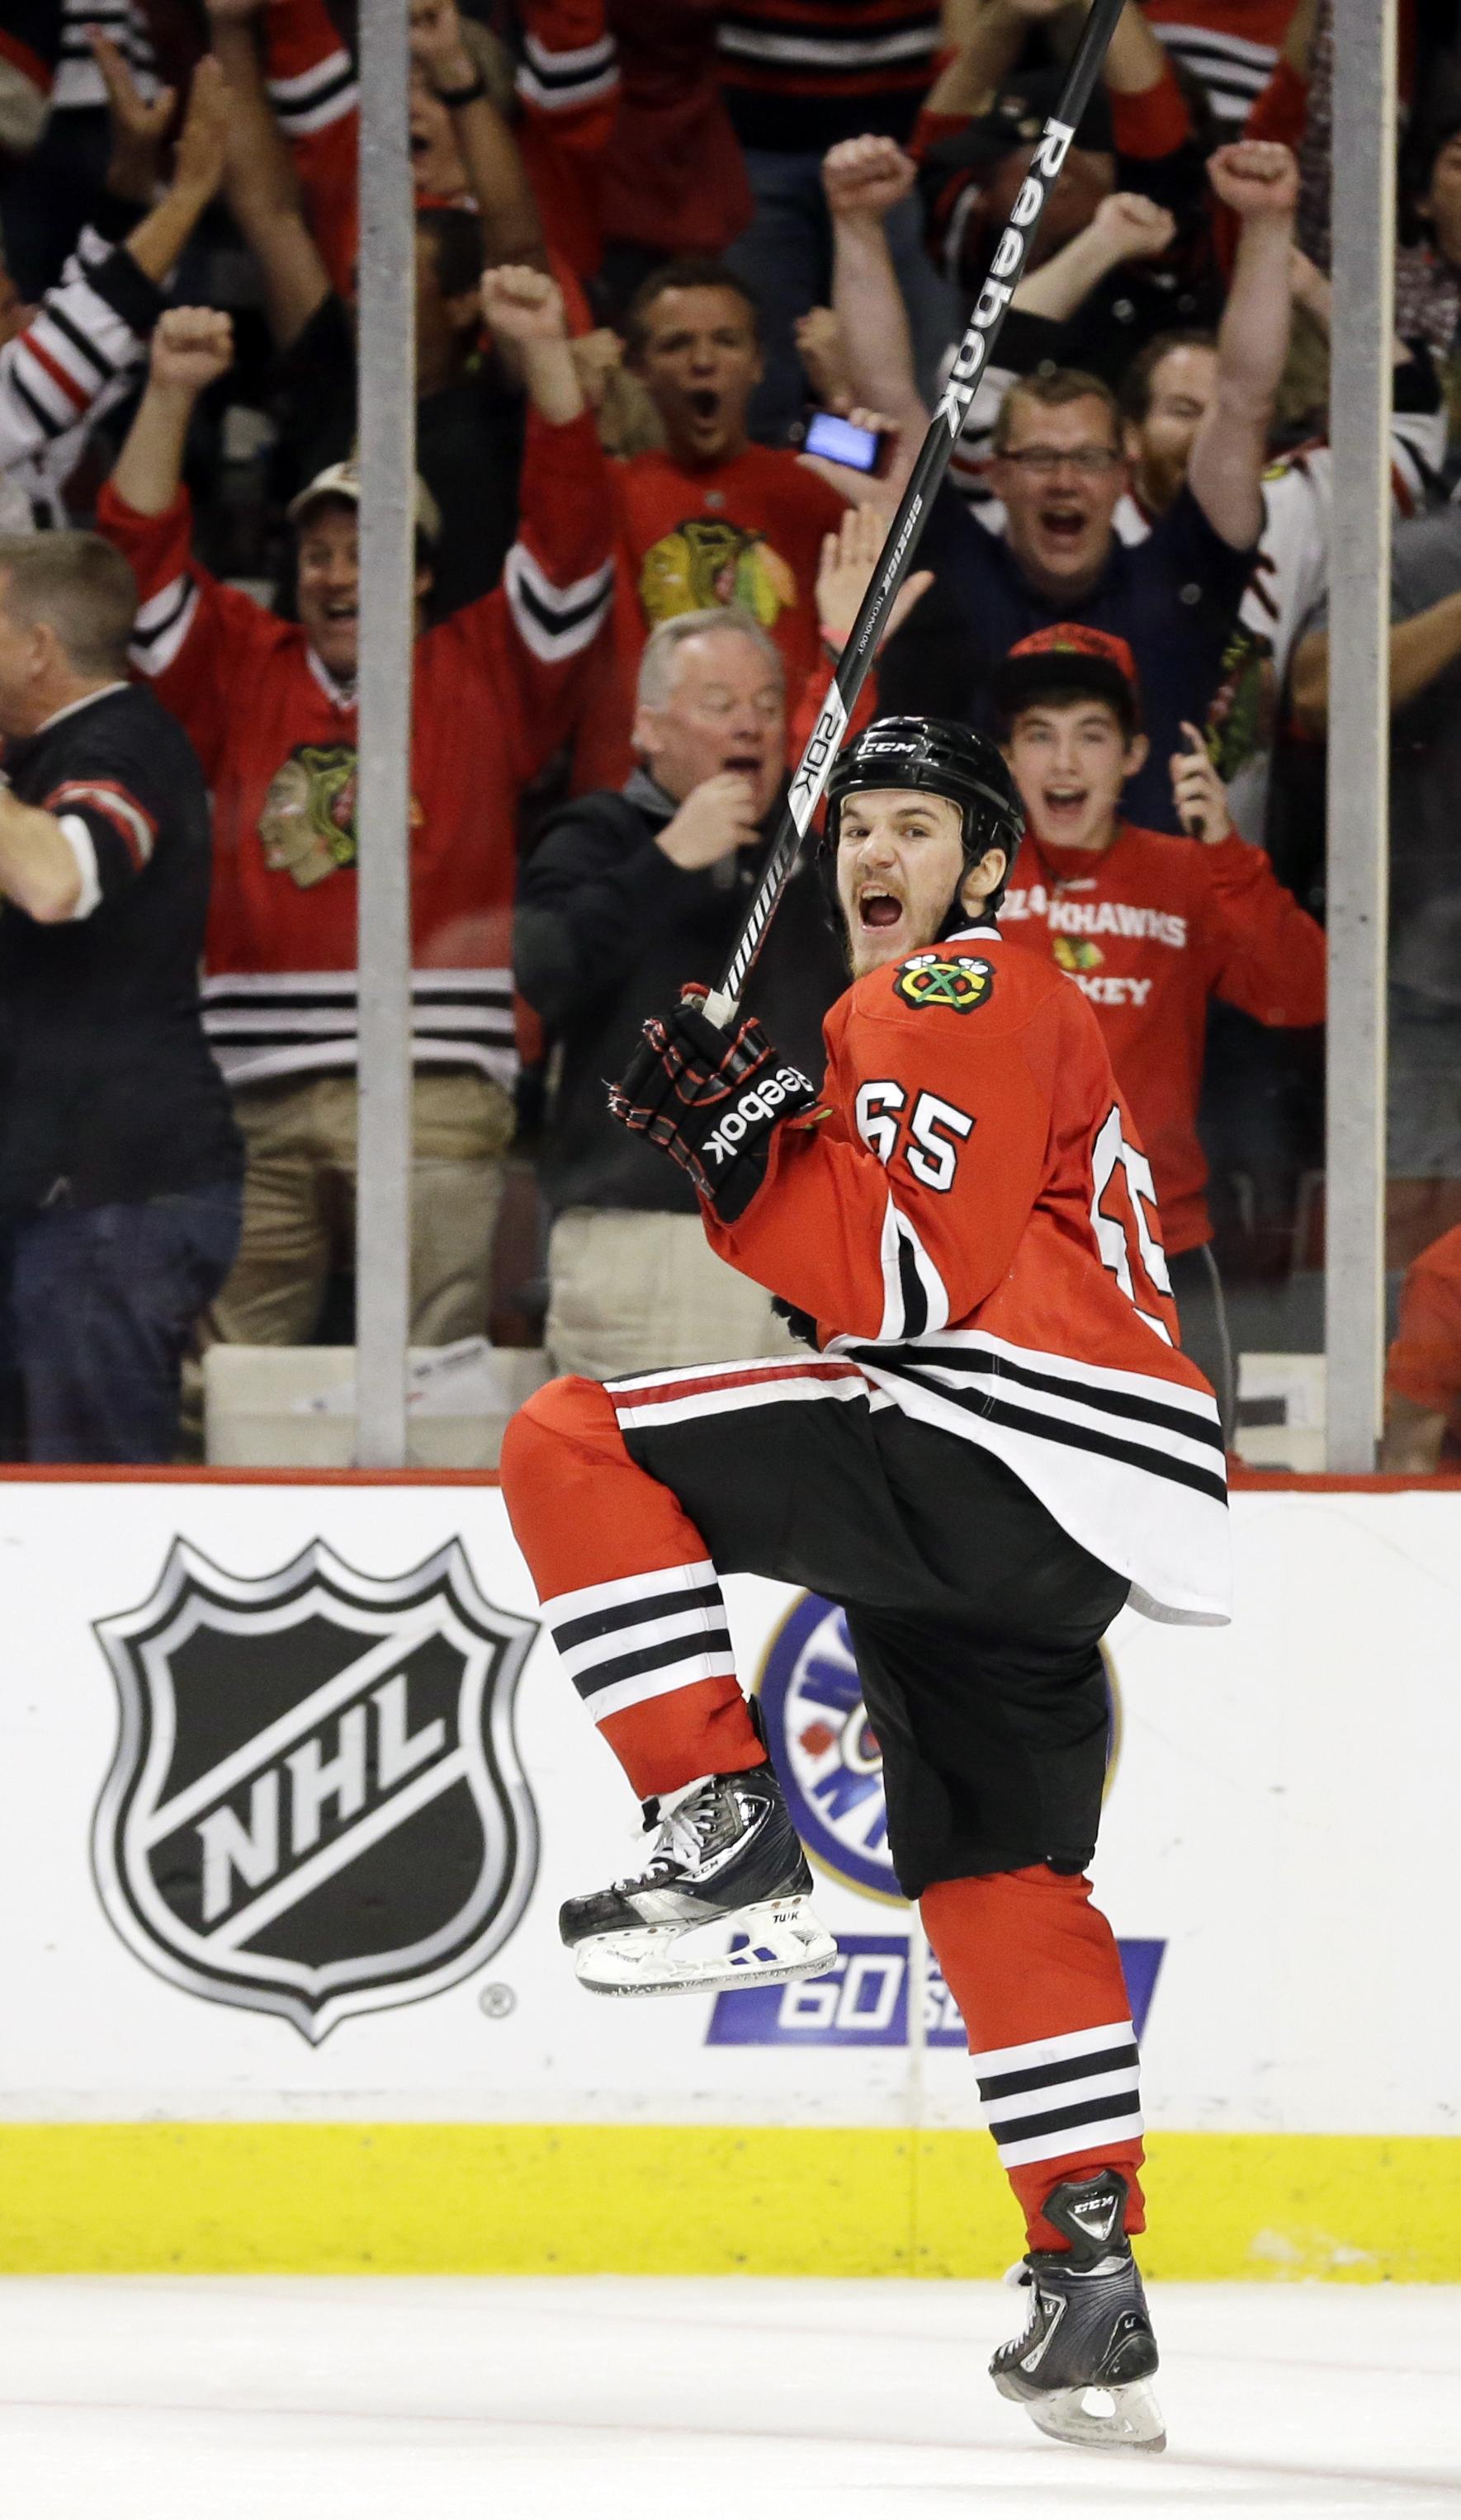 Chicago's Andrew Shaw celebrates after scoring the winning goal during the third overtime period of Game One in the Stanley Cup finals against the Boston Bruins.